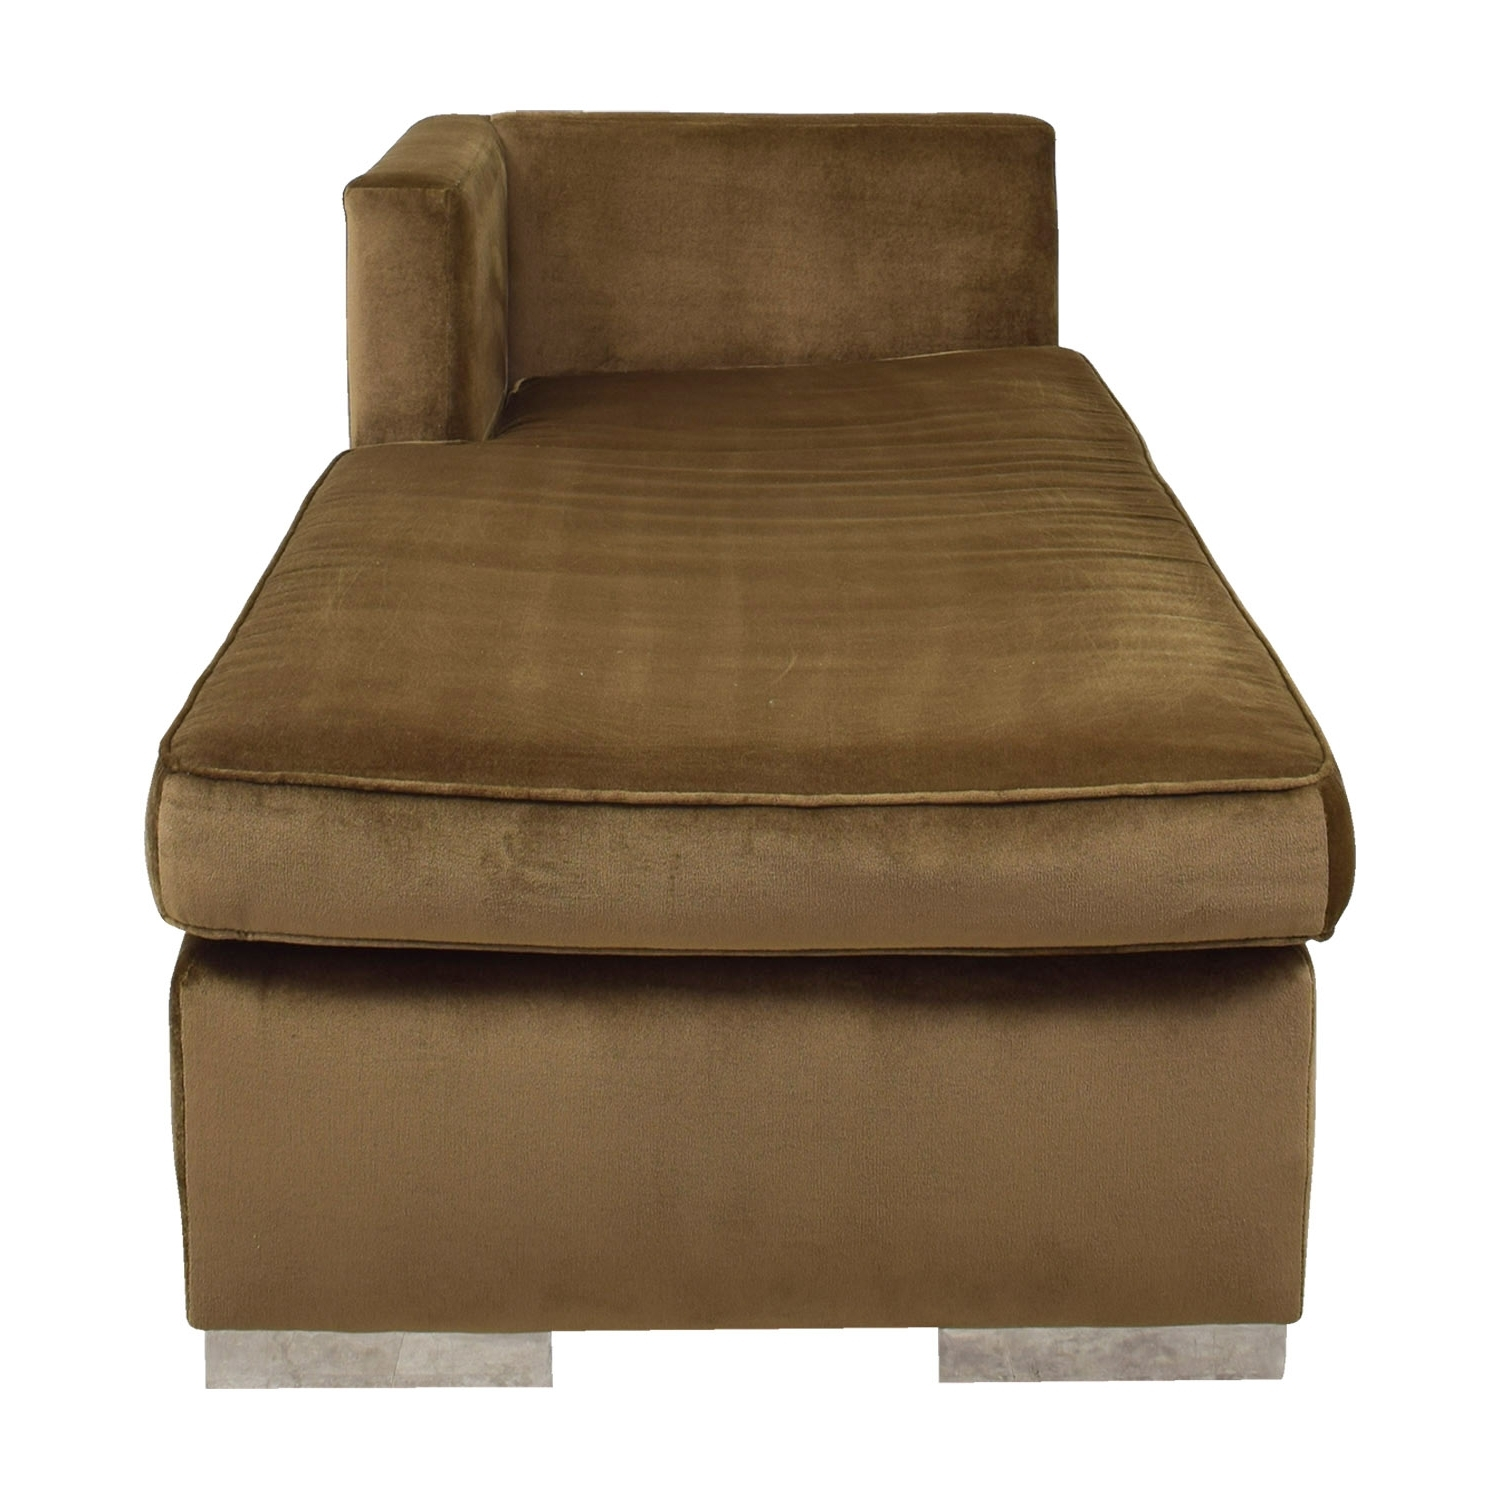 [%85% Off – Leija Designs Leija Designs Brown Mohair Chaise Lounger Intended For Most Popular Brown Chaises|Brown Chaises With Most Up To Date 85% Off – Leija Designs Leija Designs Brown Mohair Chaise Lounger|Recent Brown Chaises Regarding 85% Off – Leija Designs Leija Designs Brown Mohair Chaise Lounger|Well Known 85% Off – Leija Designs Leija Designs Brown Mohair Chaise Lounger With Regard To Brown Chaises%] (View 2 of 15)